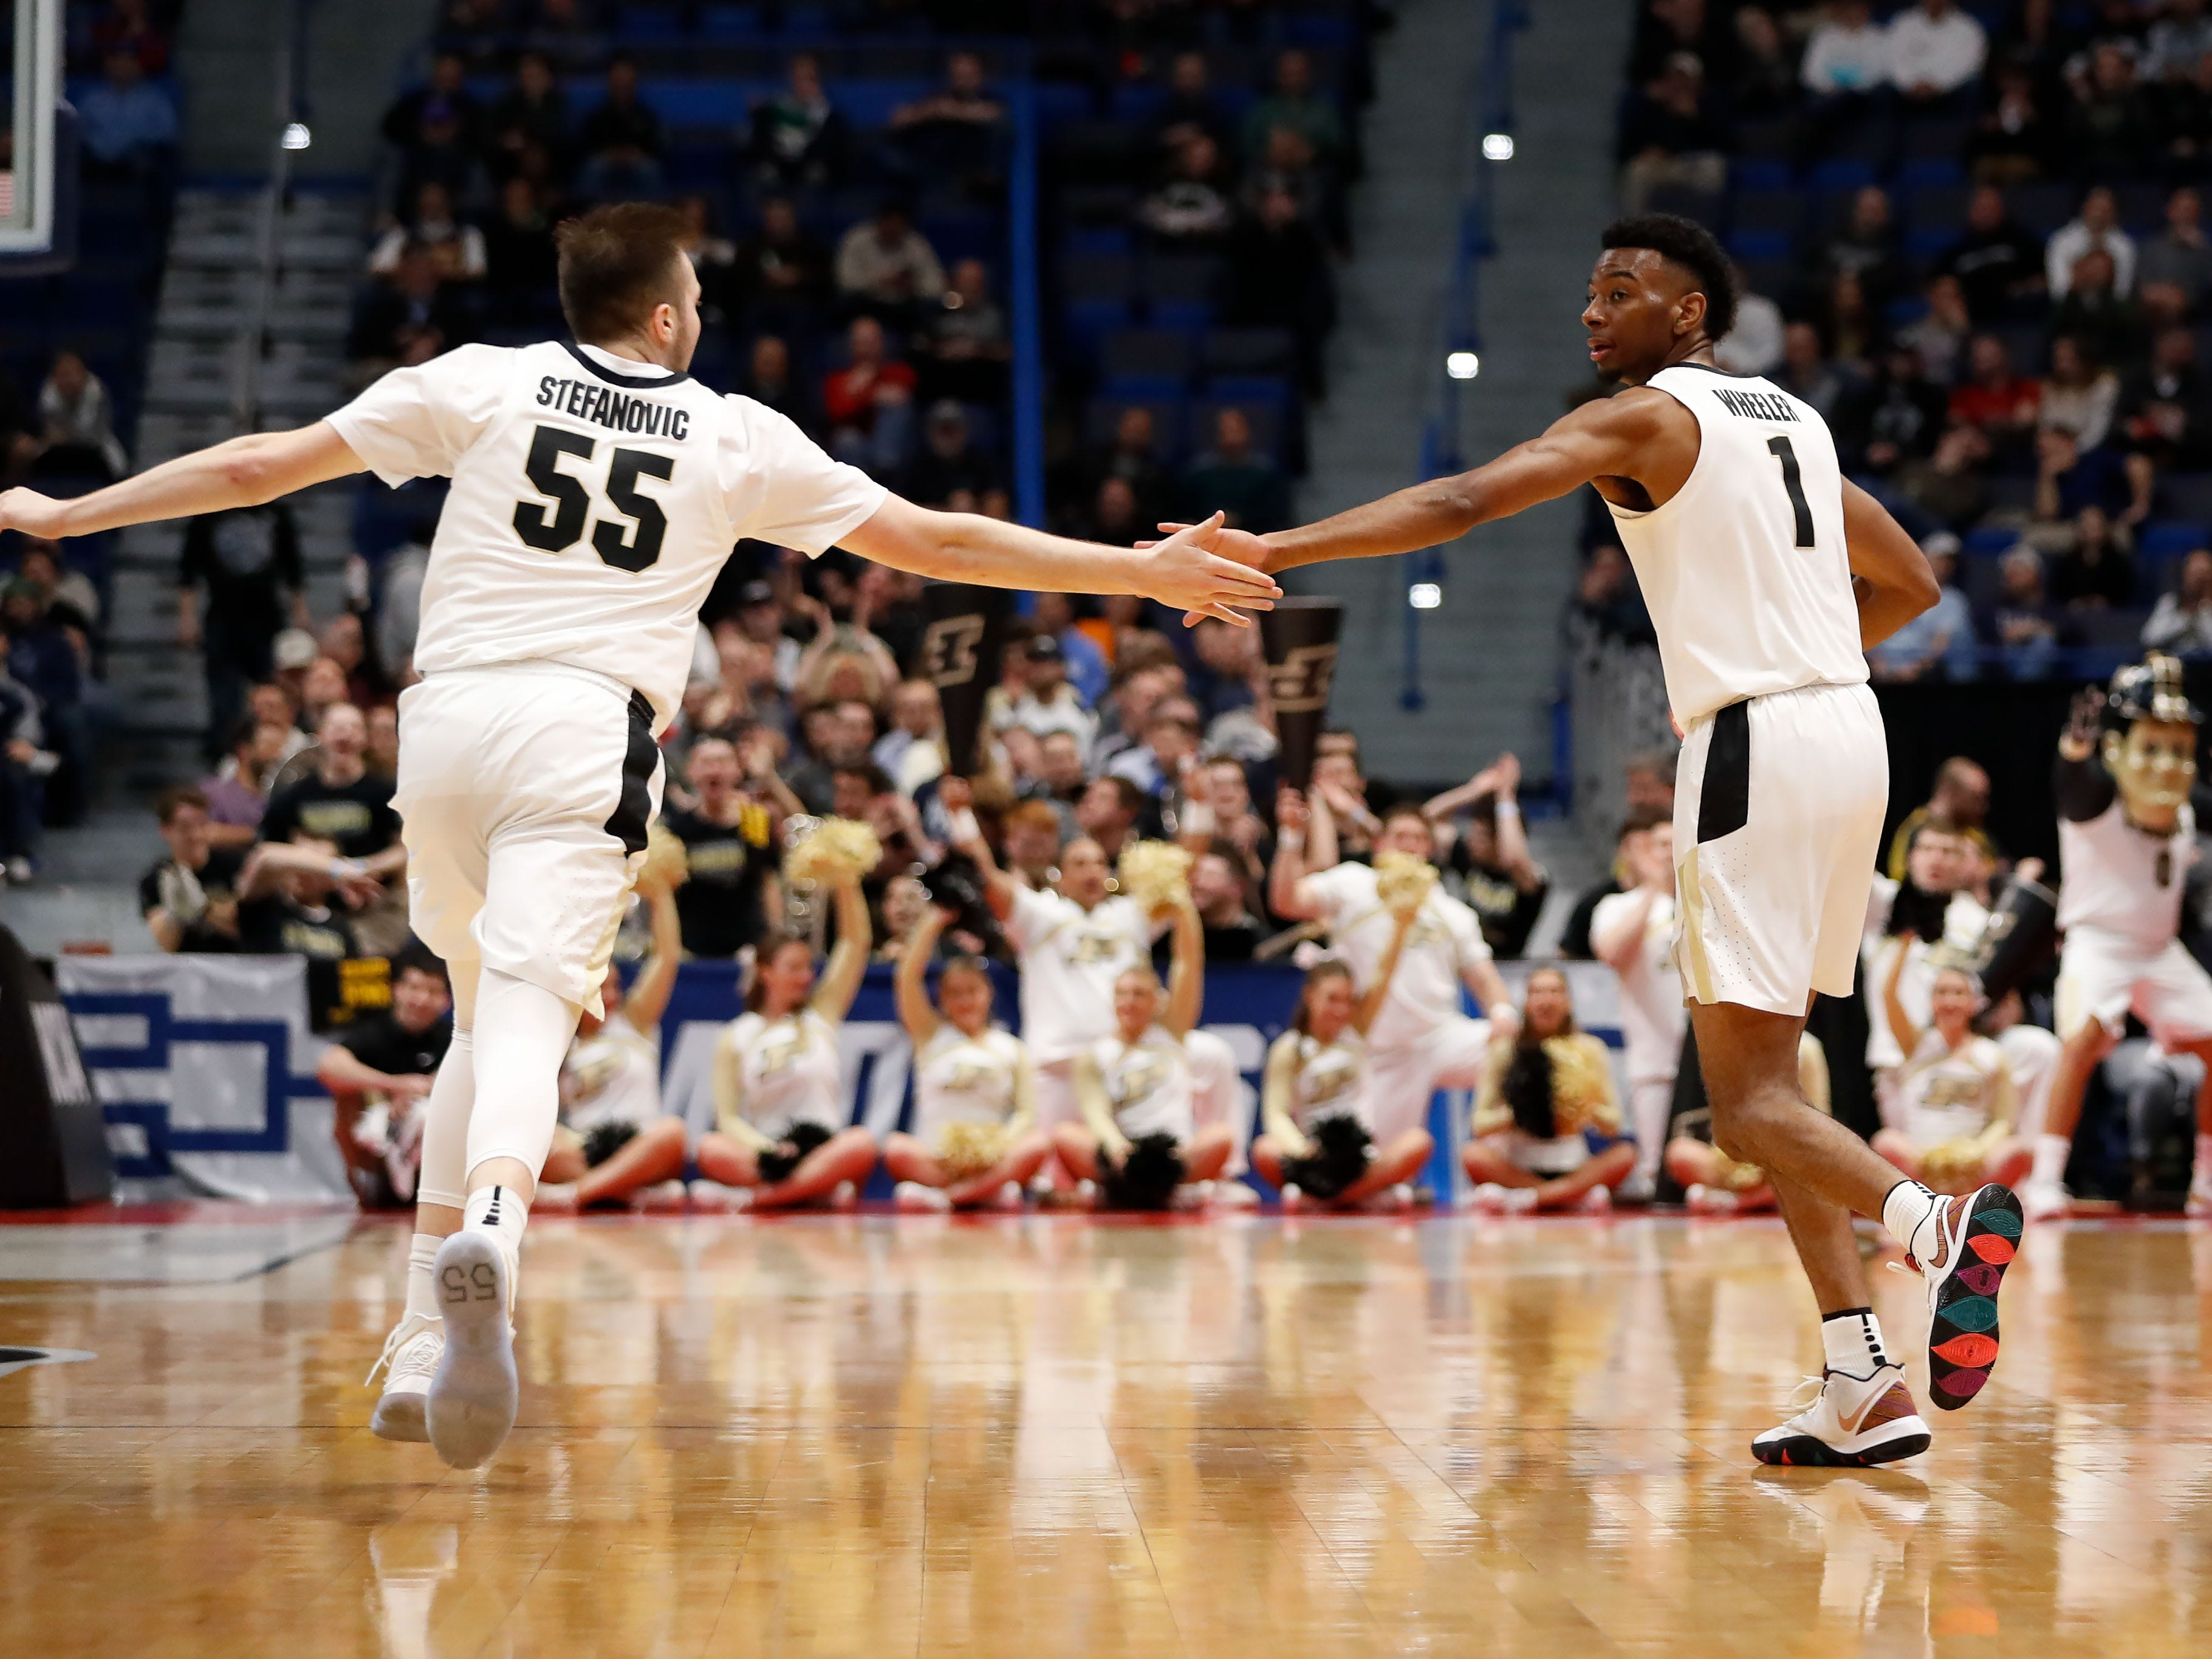 Purdue Boilermakers guard Sasha Stefanovic (55) and forward Aaron Wheeler (1) high five during the first half of a game against the Old Dominion Monarchs in the first round of the 2019 NCAA Tournament at XL Center. ODAY Sports